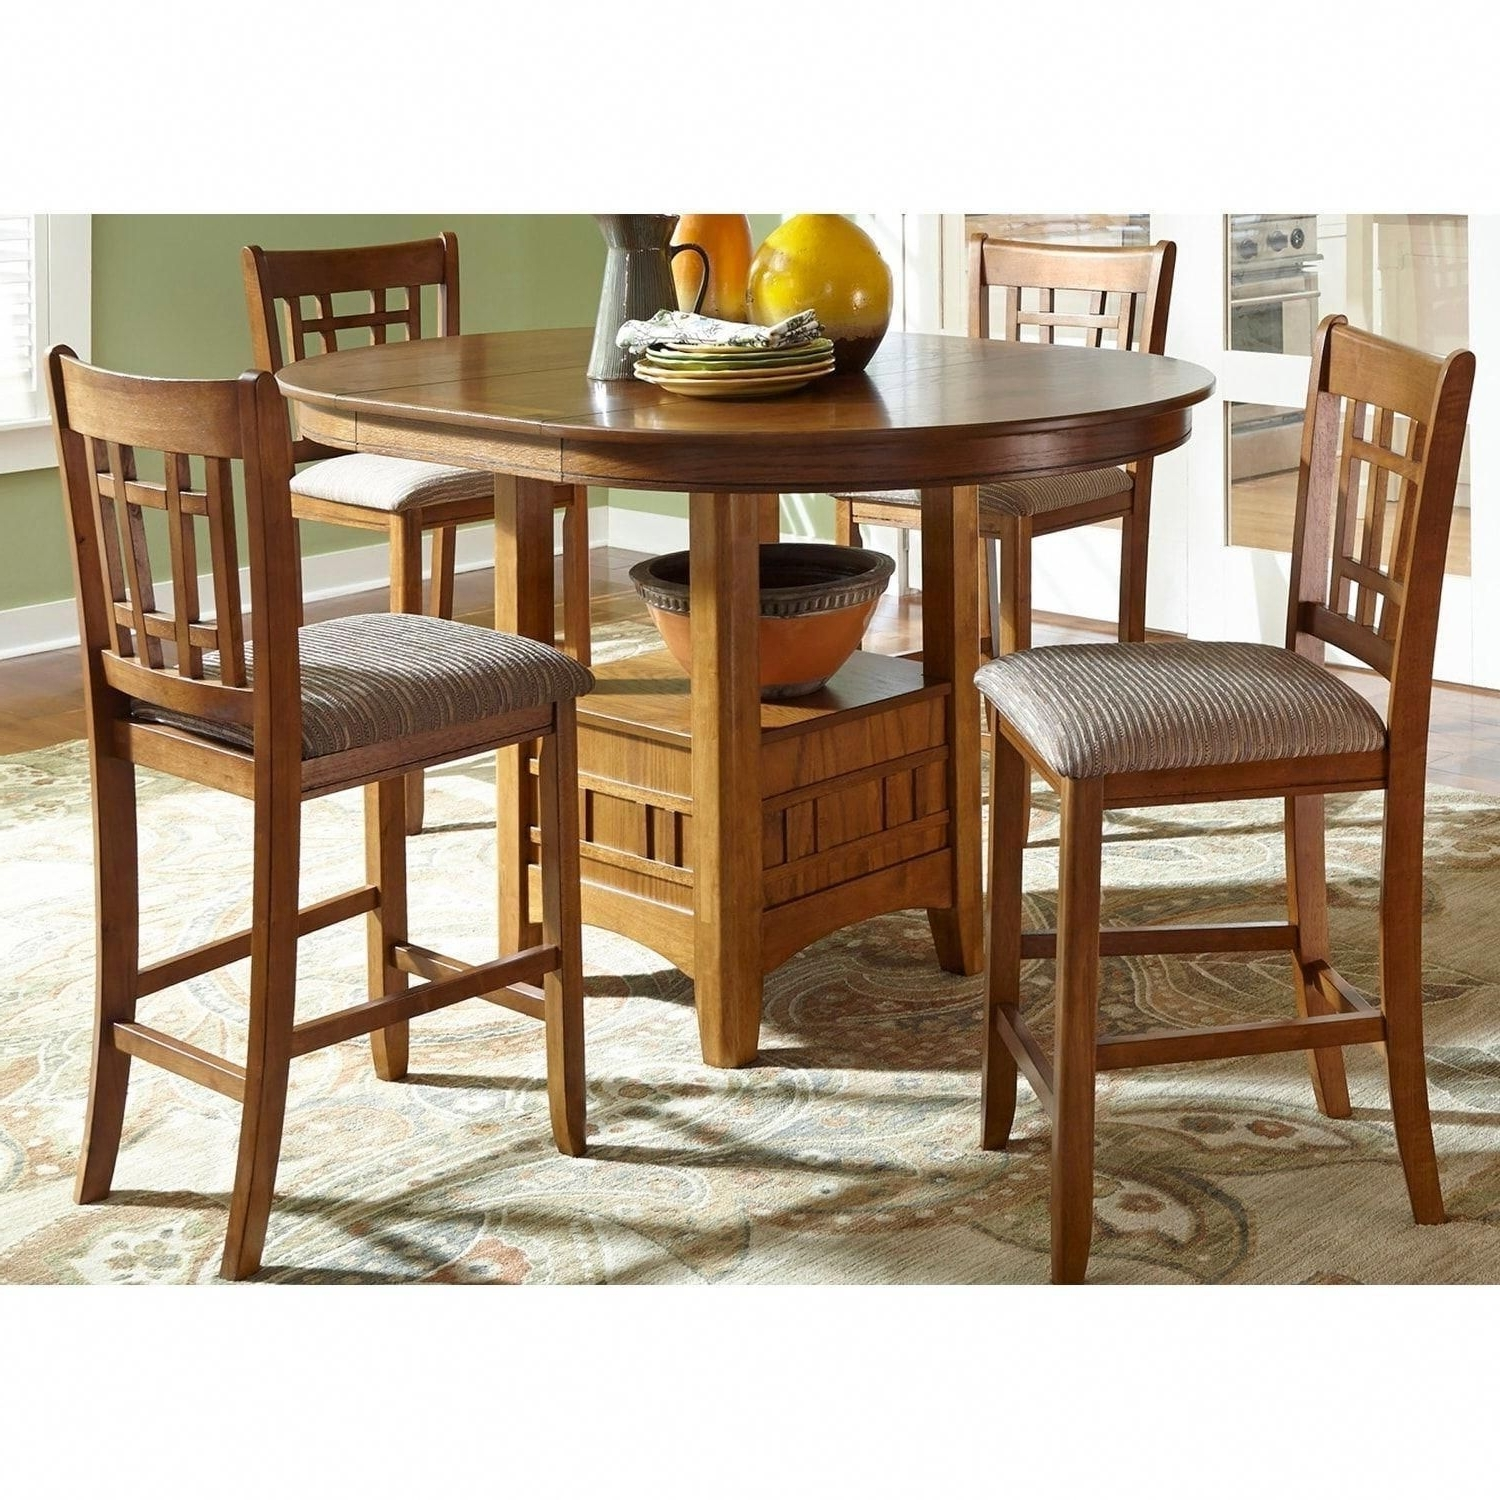 Liberty Santa Rosa Mission Oak Wood 5 Piece Counter Height Pub Set Pertaining To Preferred Craftsman 9 Piece Extension Dining Sets With Uph Side Chairs (View 14 of 25)